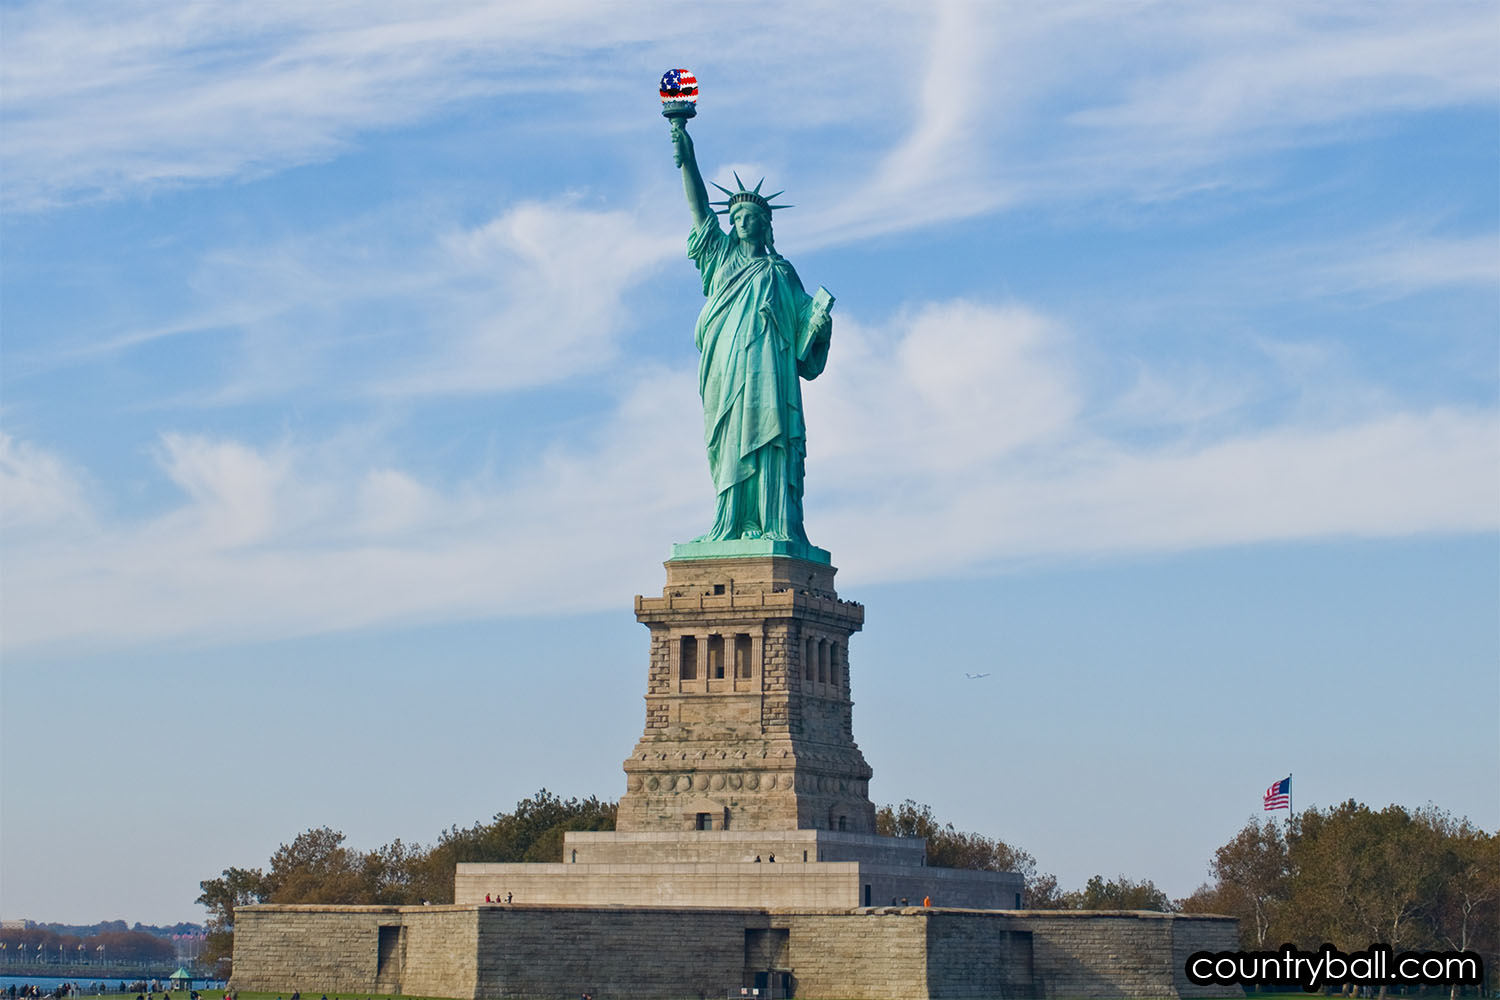 The Statue of Liberty holding an USABall